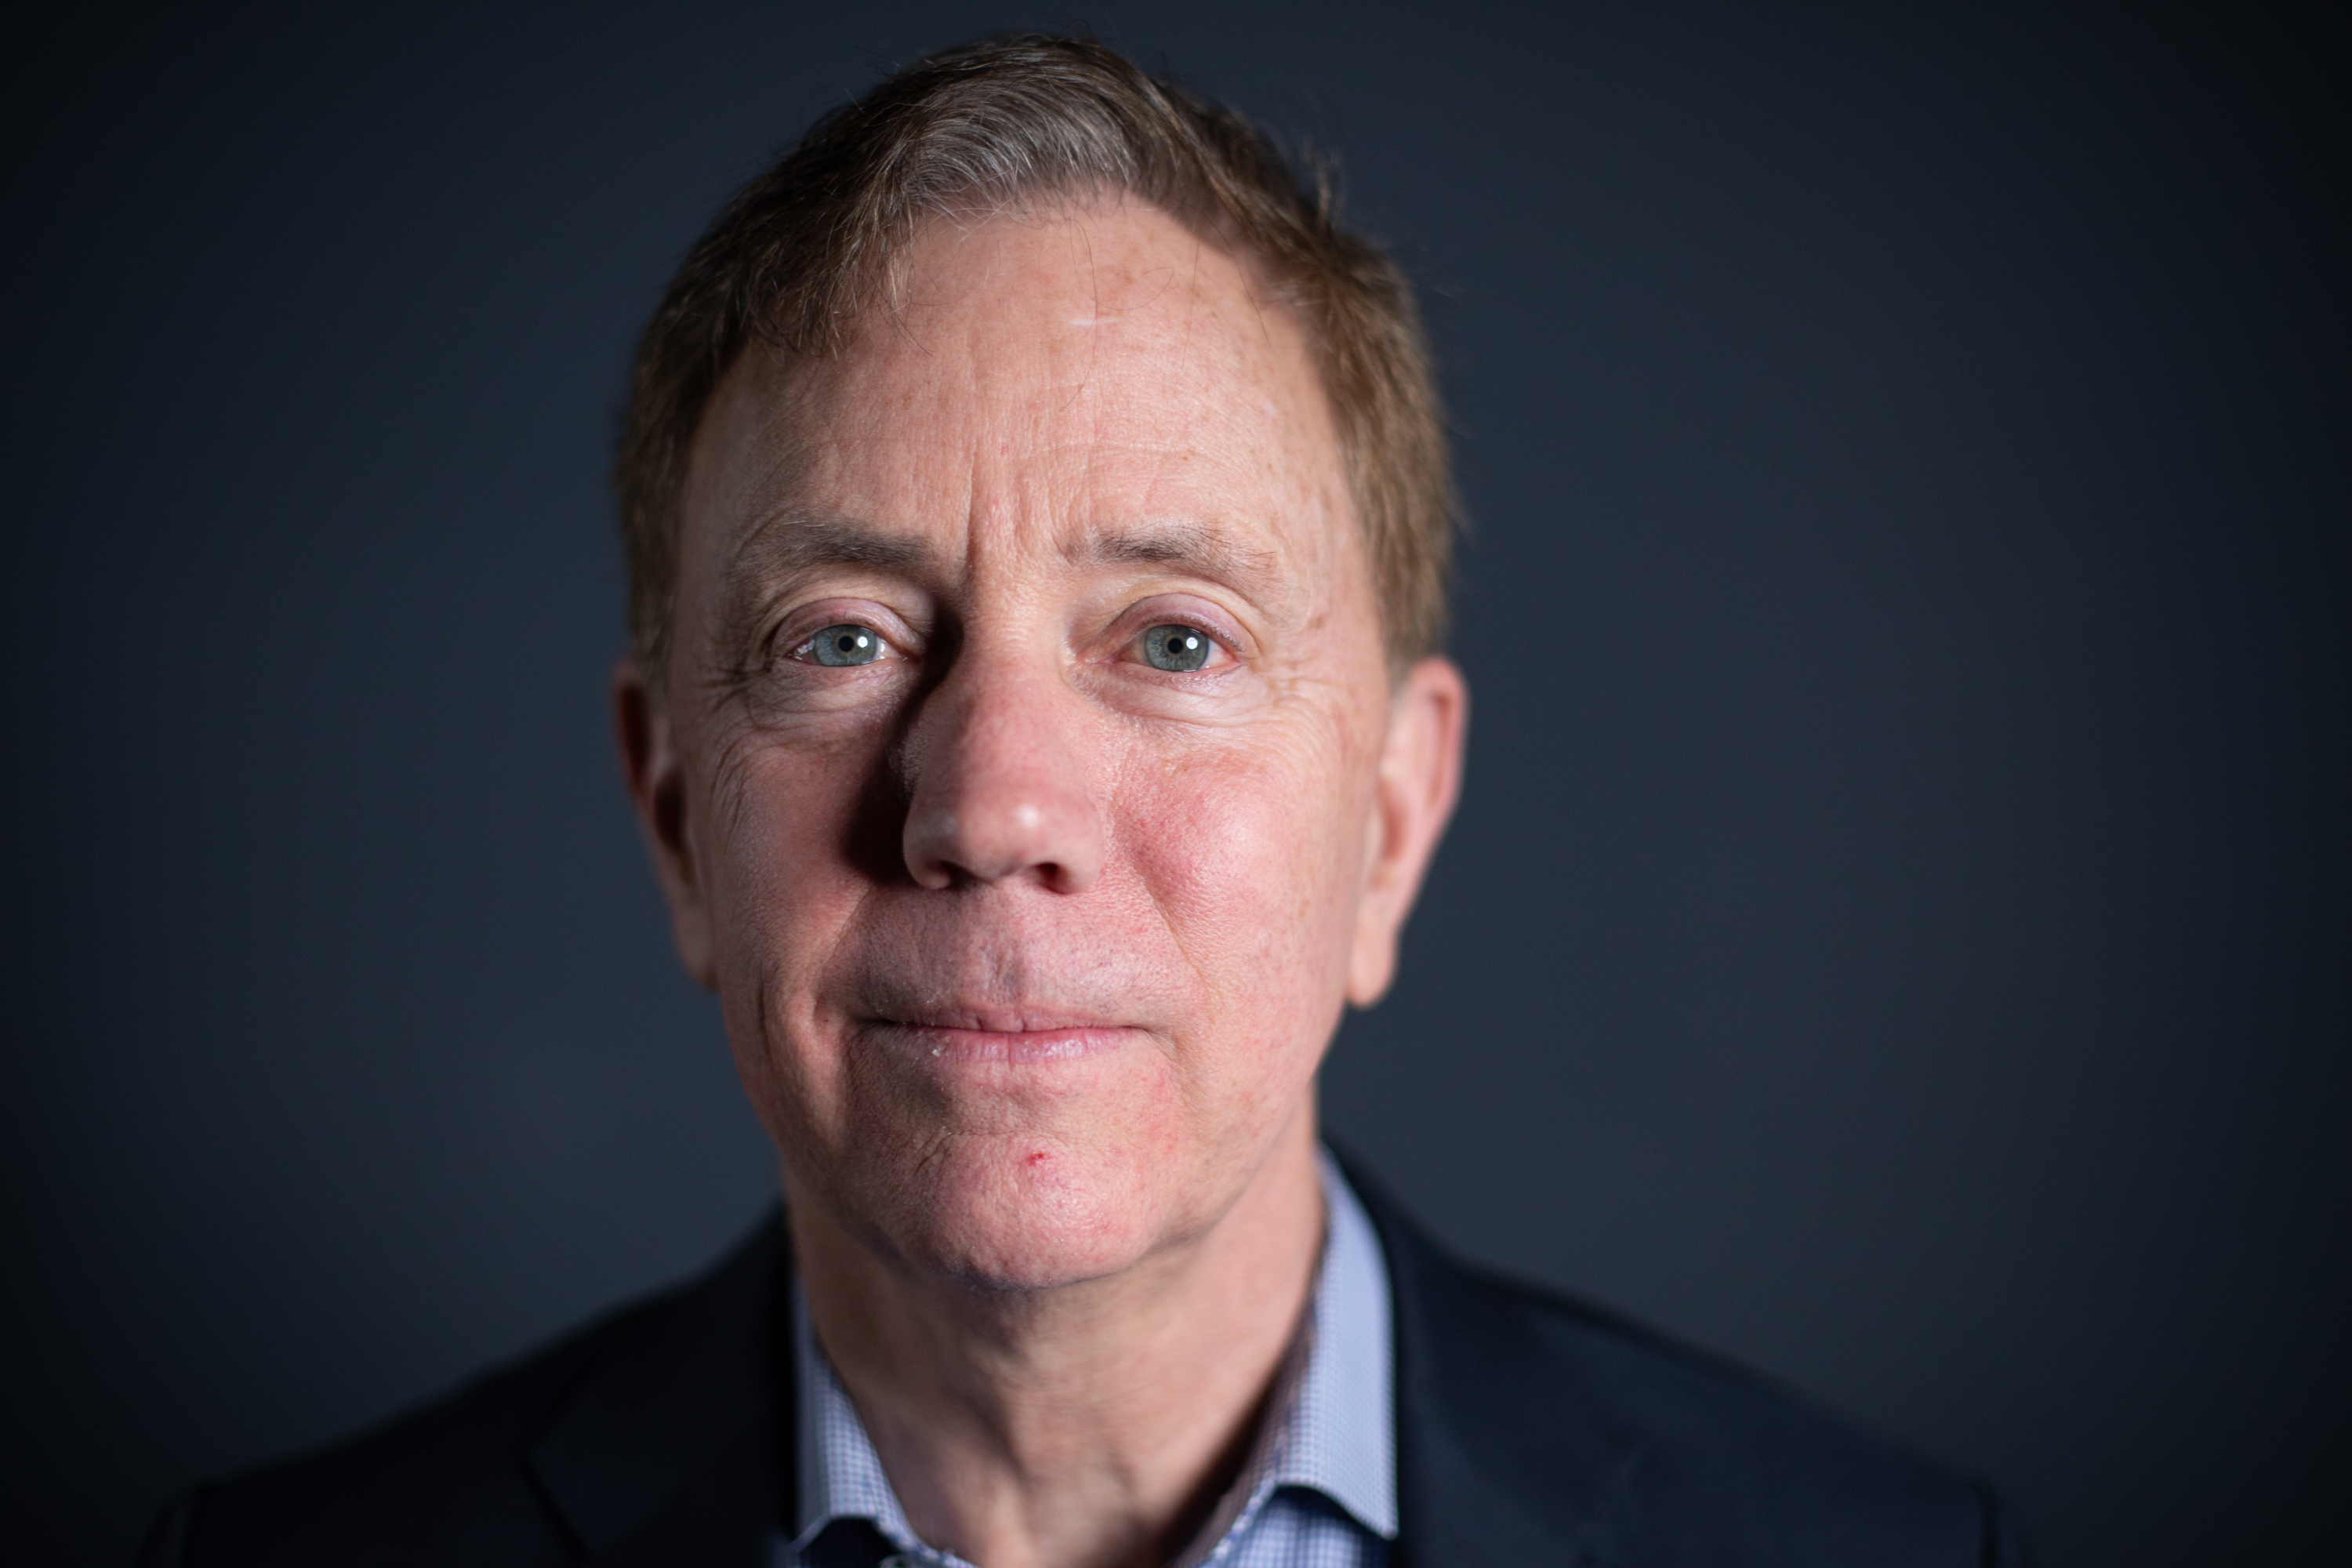 Labor, business and the courtship of Ned Lamont